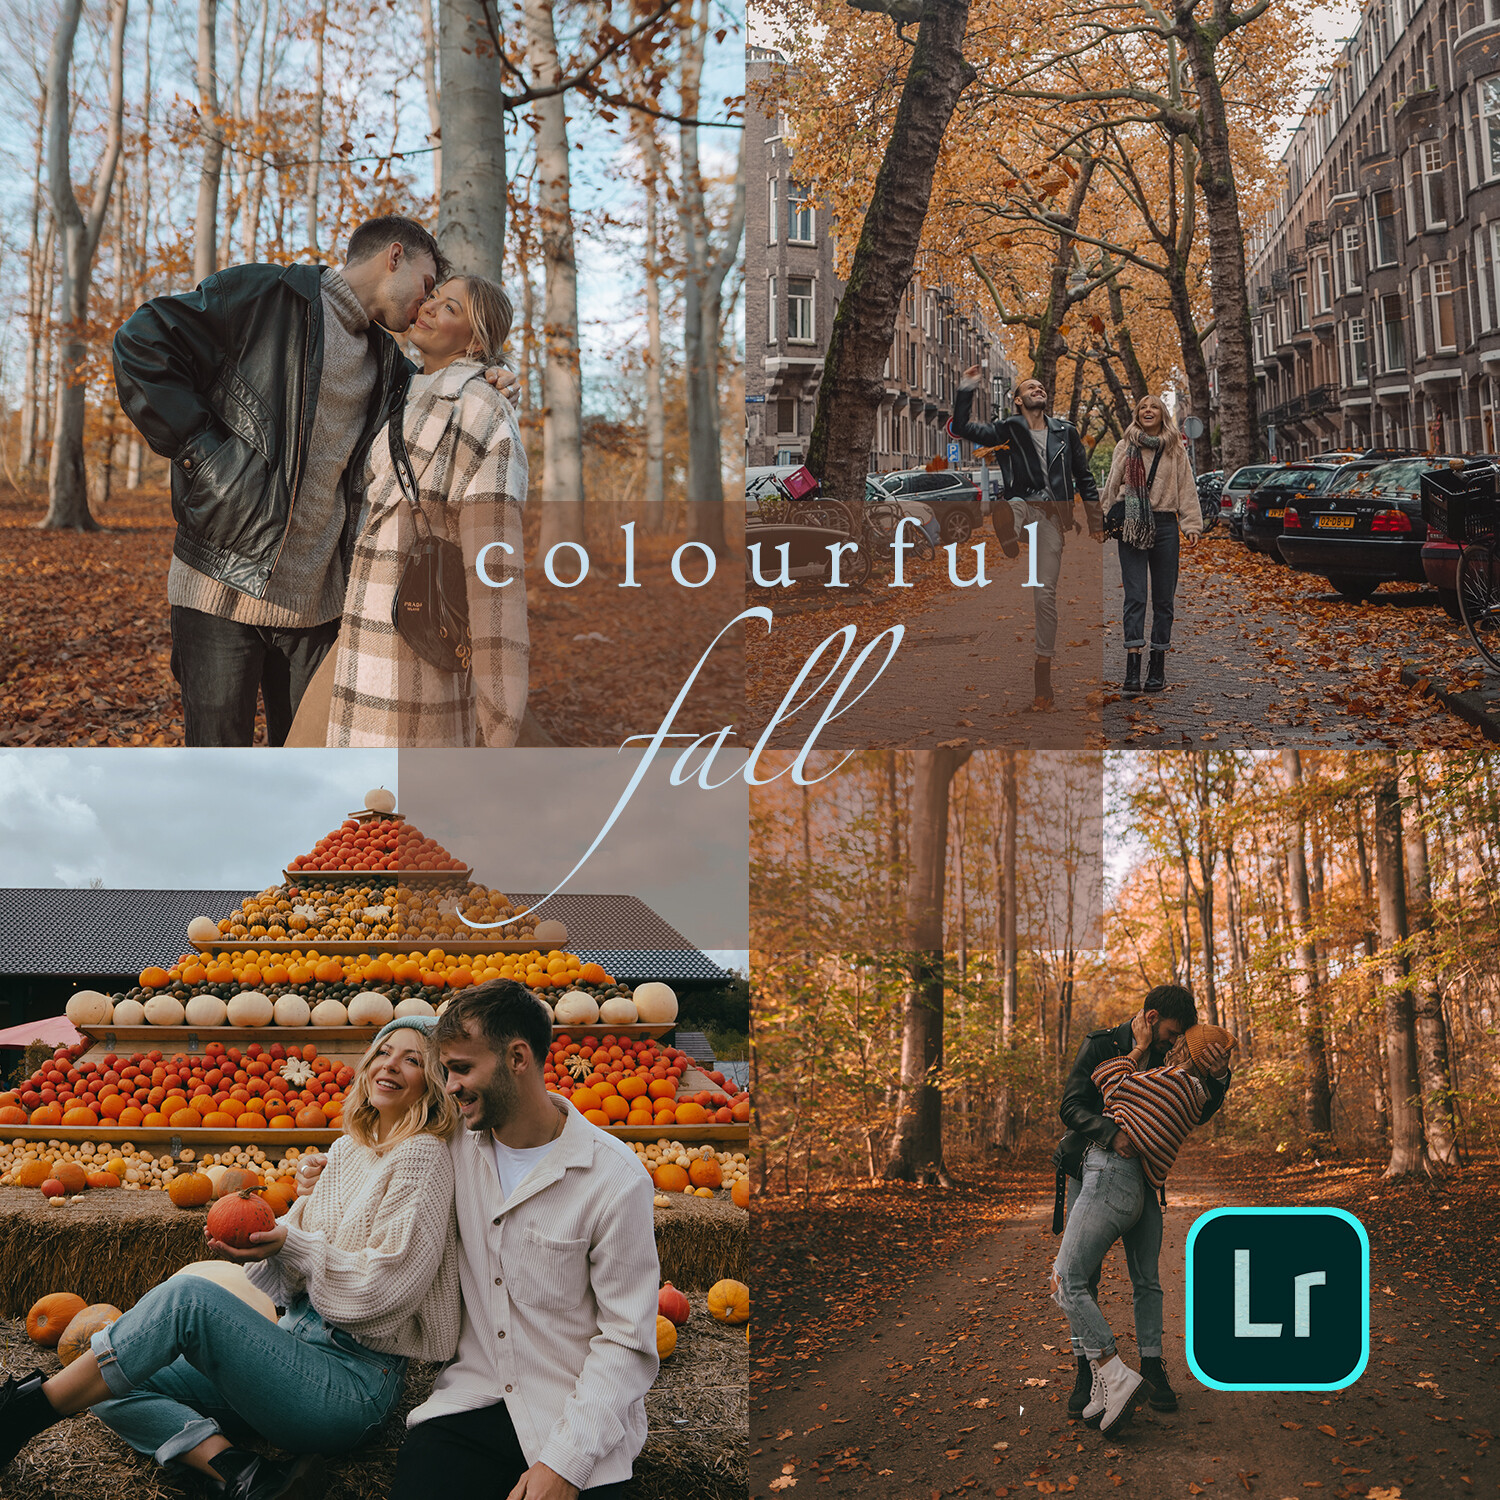 Colorful Fall - Autumn Collection 2.0